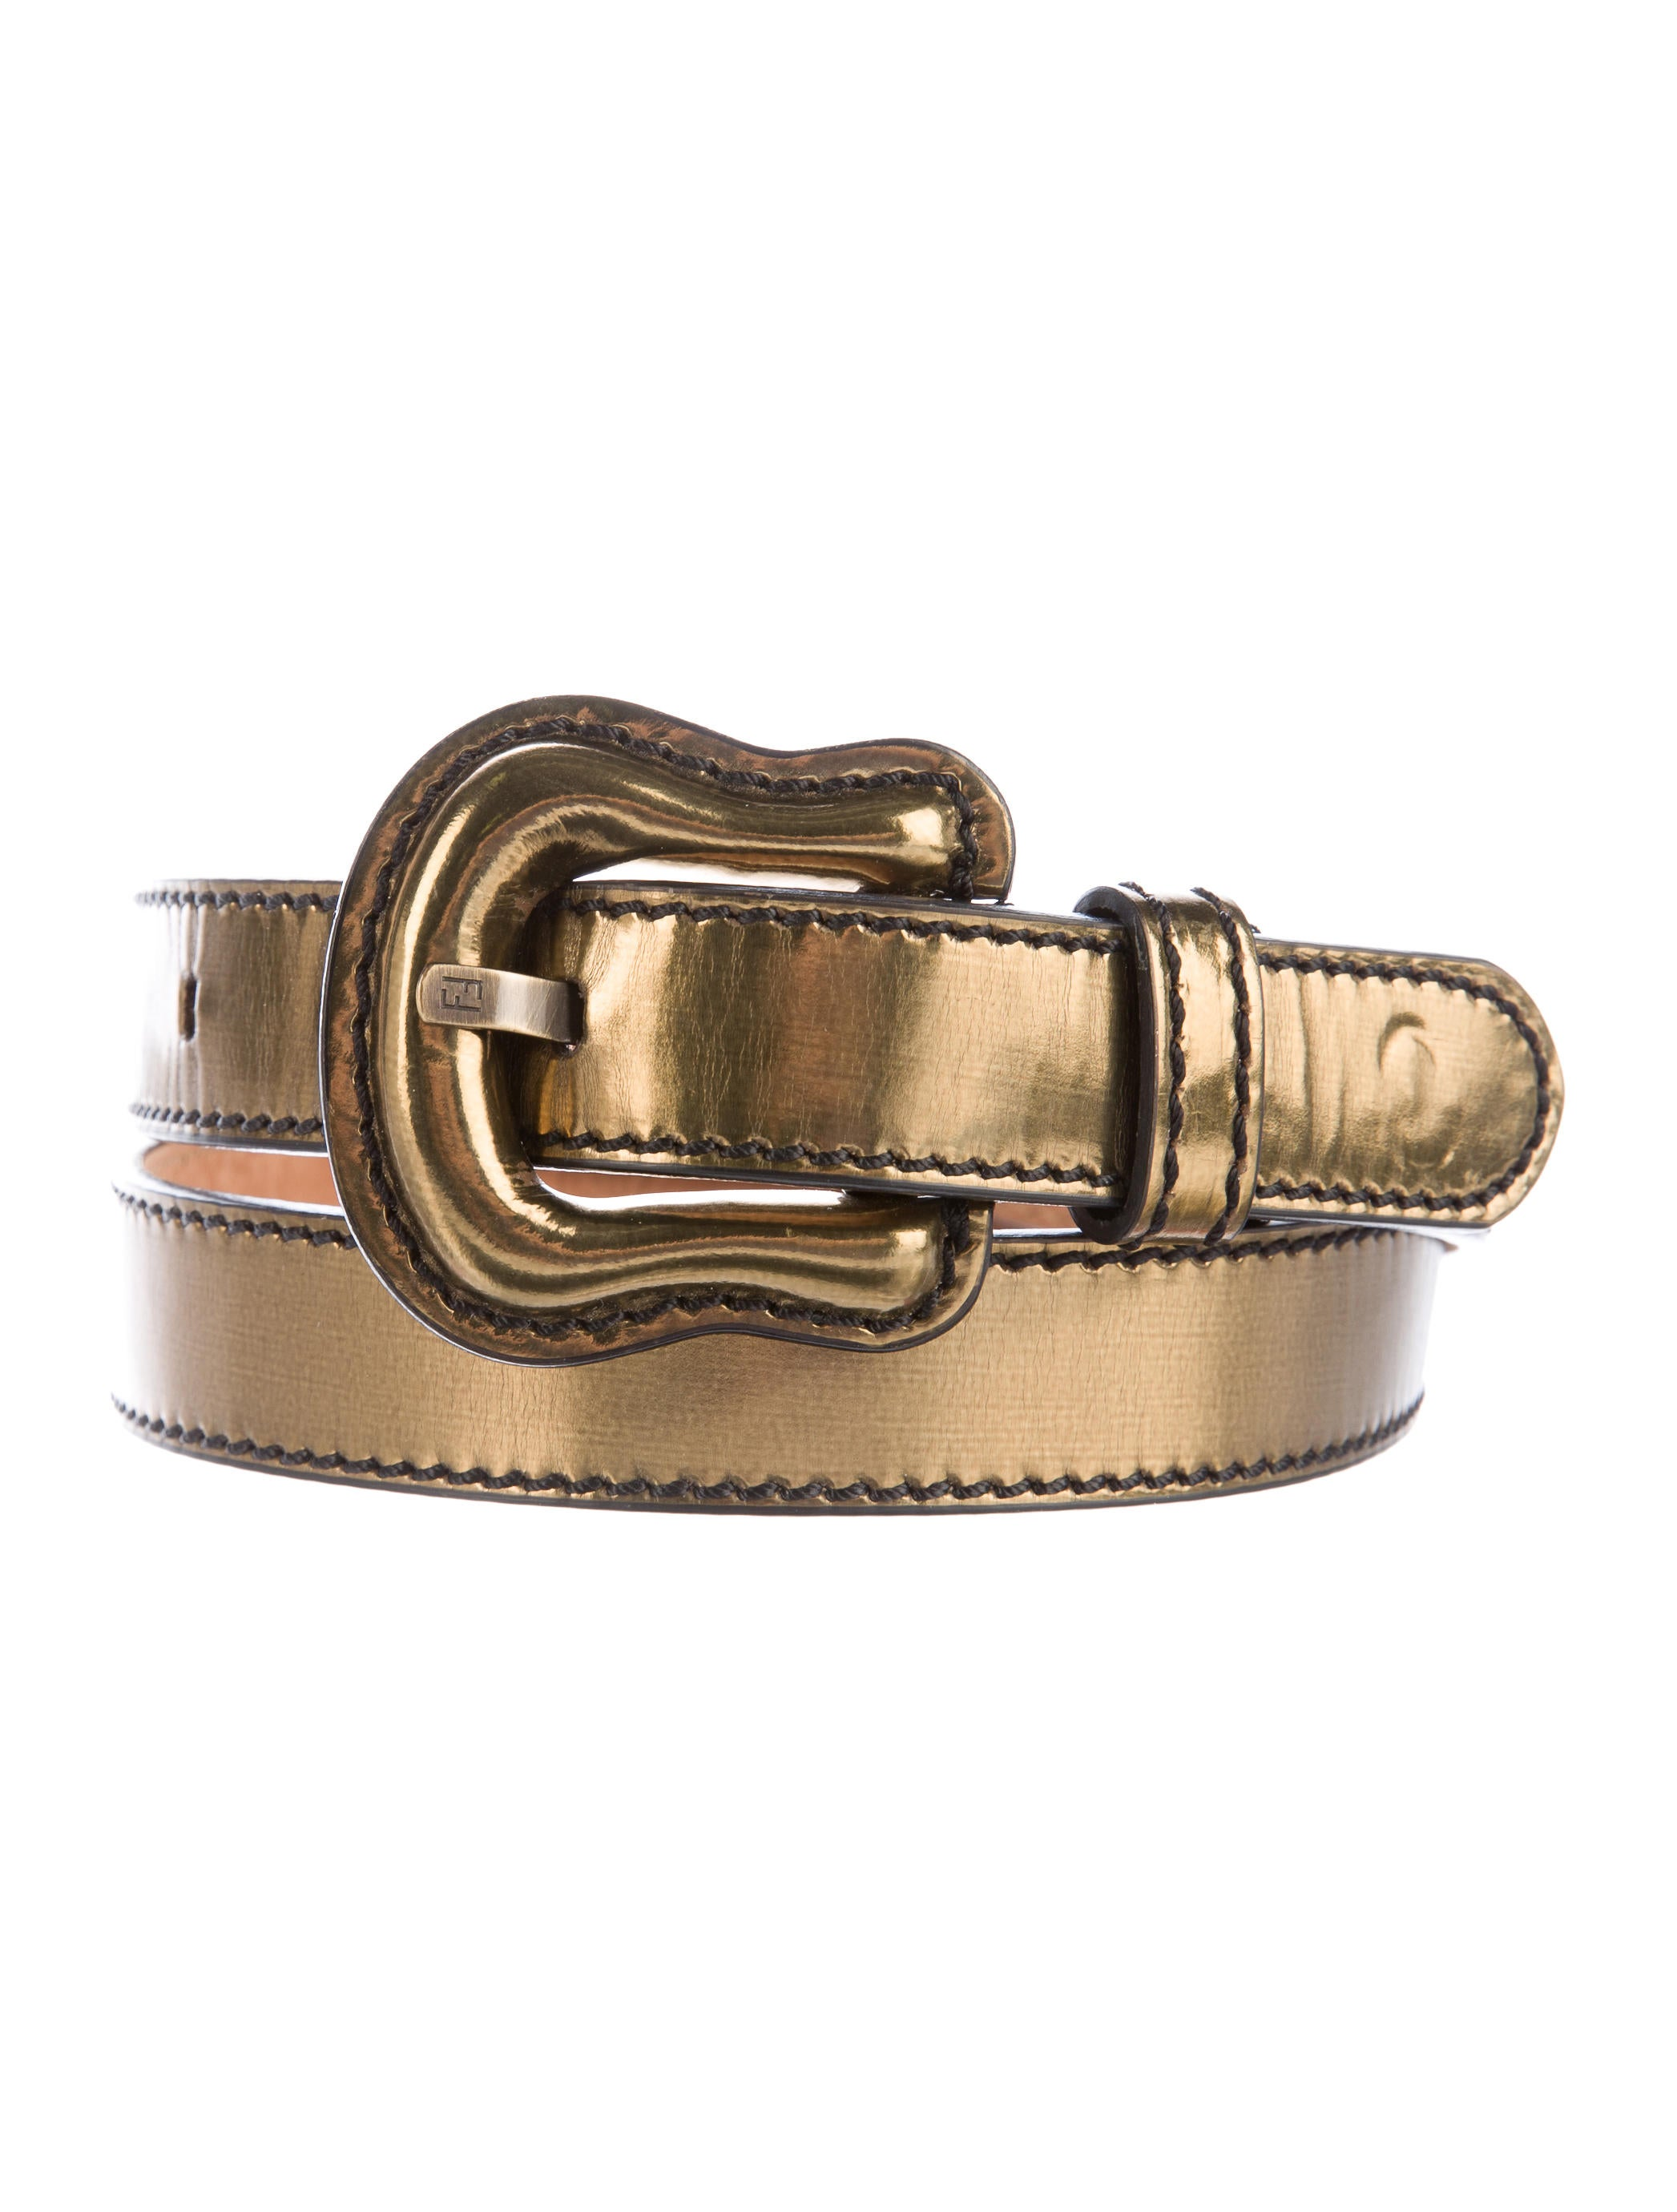 fendi metallic leather belt accessories fen52173 the